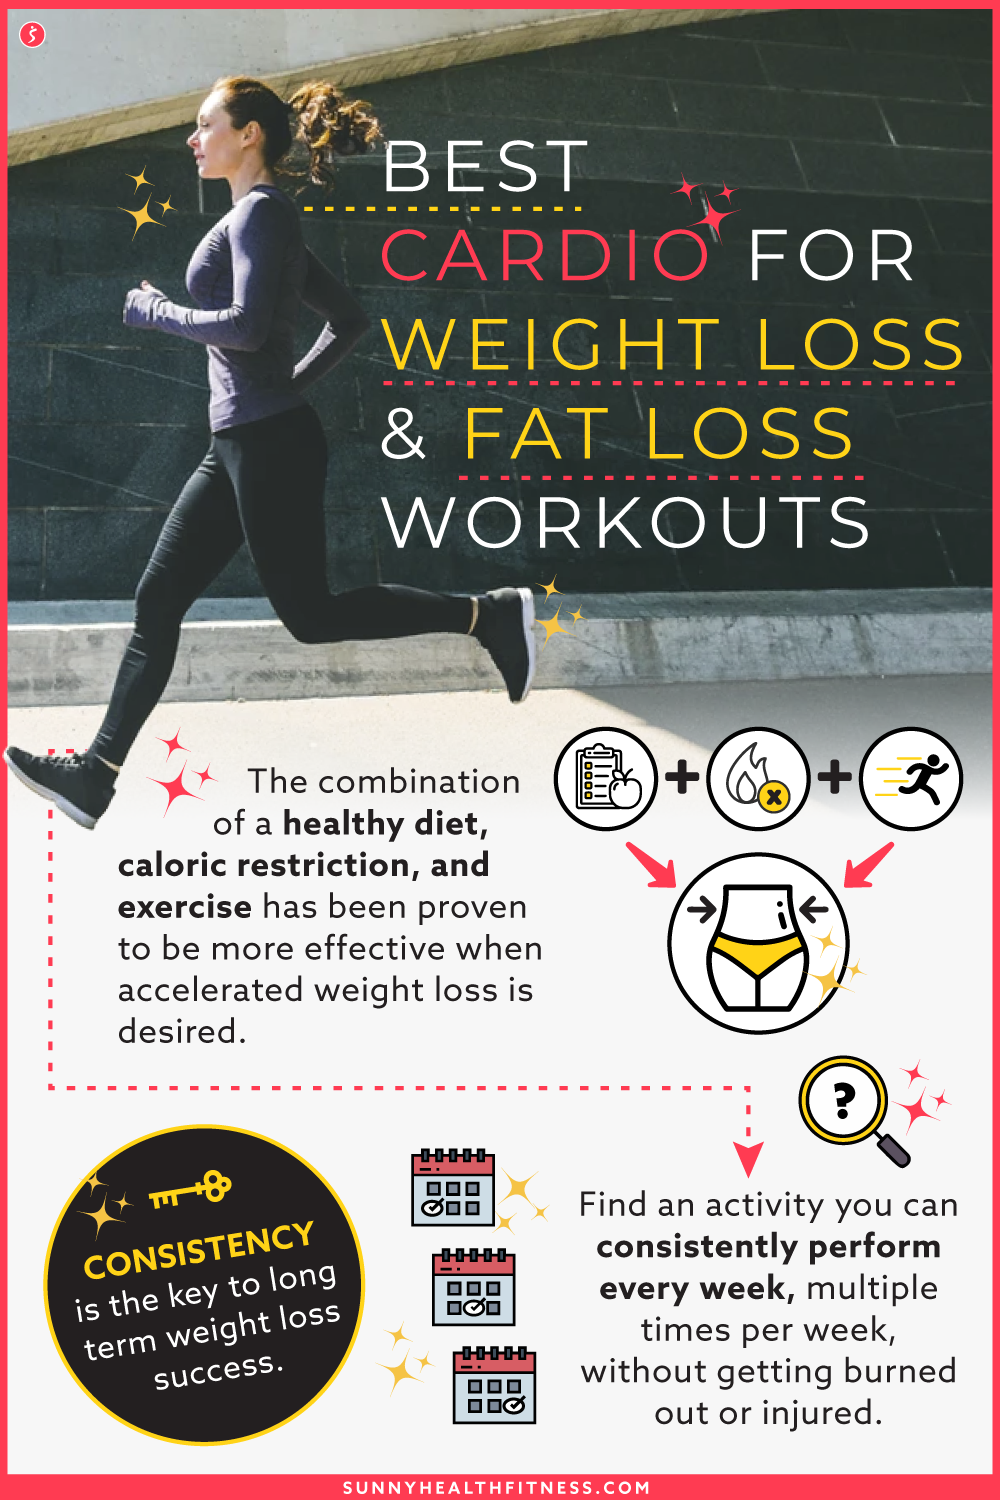 How to Achieve Weight Loss & Fat Loss Using Best Cardio Workouts Combo